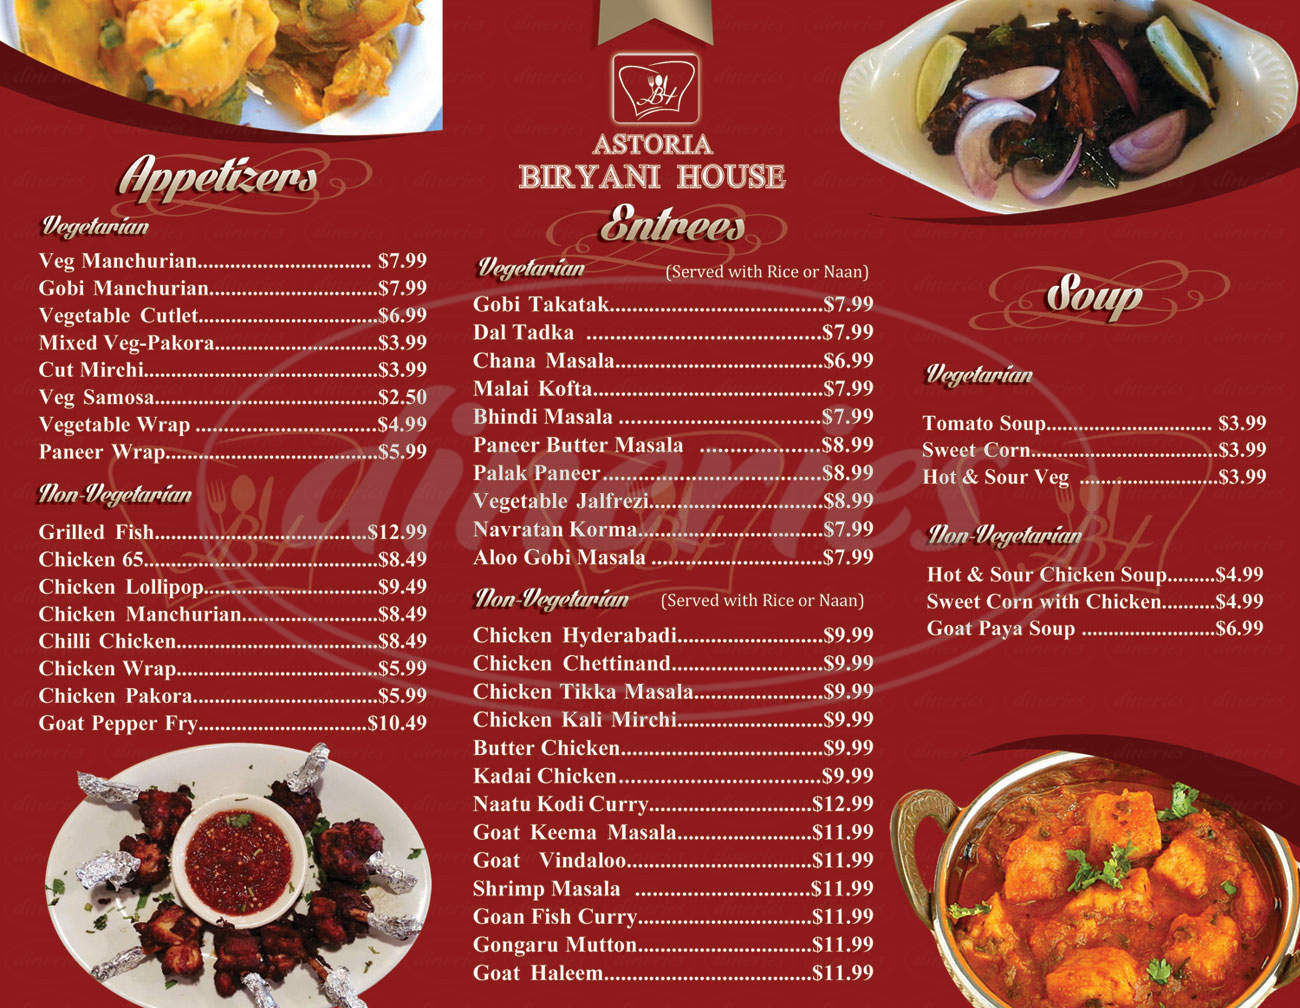 menu for Astoria Biryani House